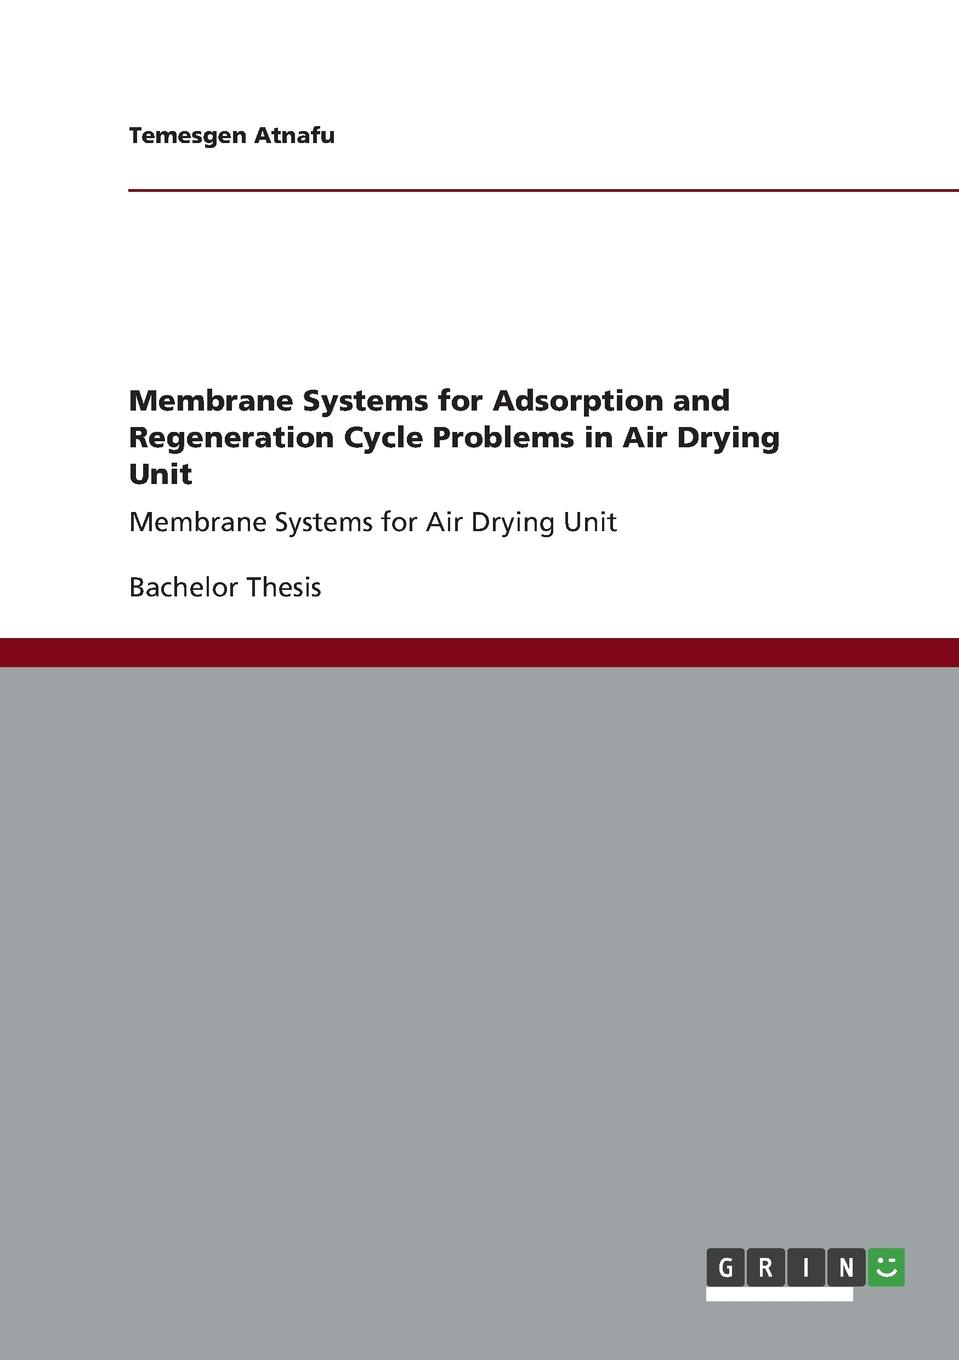 Temesgen Atnafu Membrane Systems for Adsorption and Regeneration Cycle Problems in Air Drying Unit membrane switch for 2711p b10c4b2 panelview plus ce1000